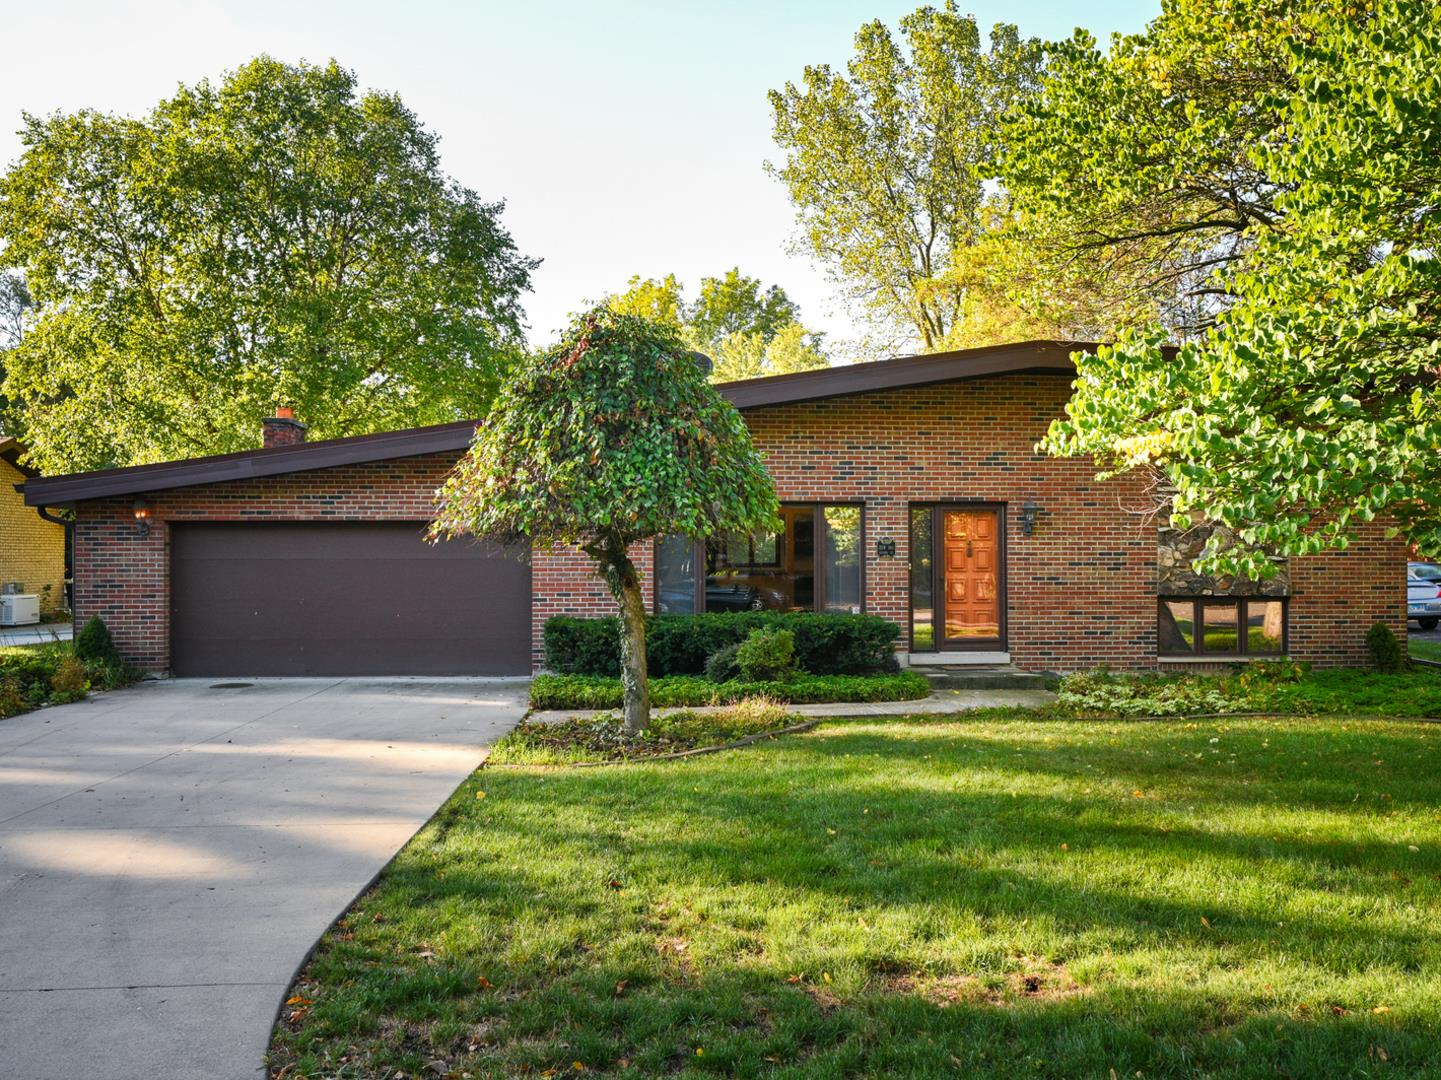 22W181 2nd Street, Glen Ellyn, IL 60137 - #: 10886534